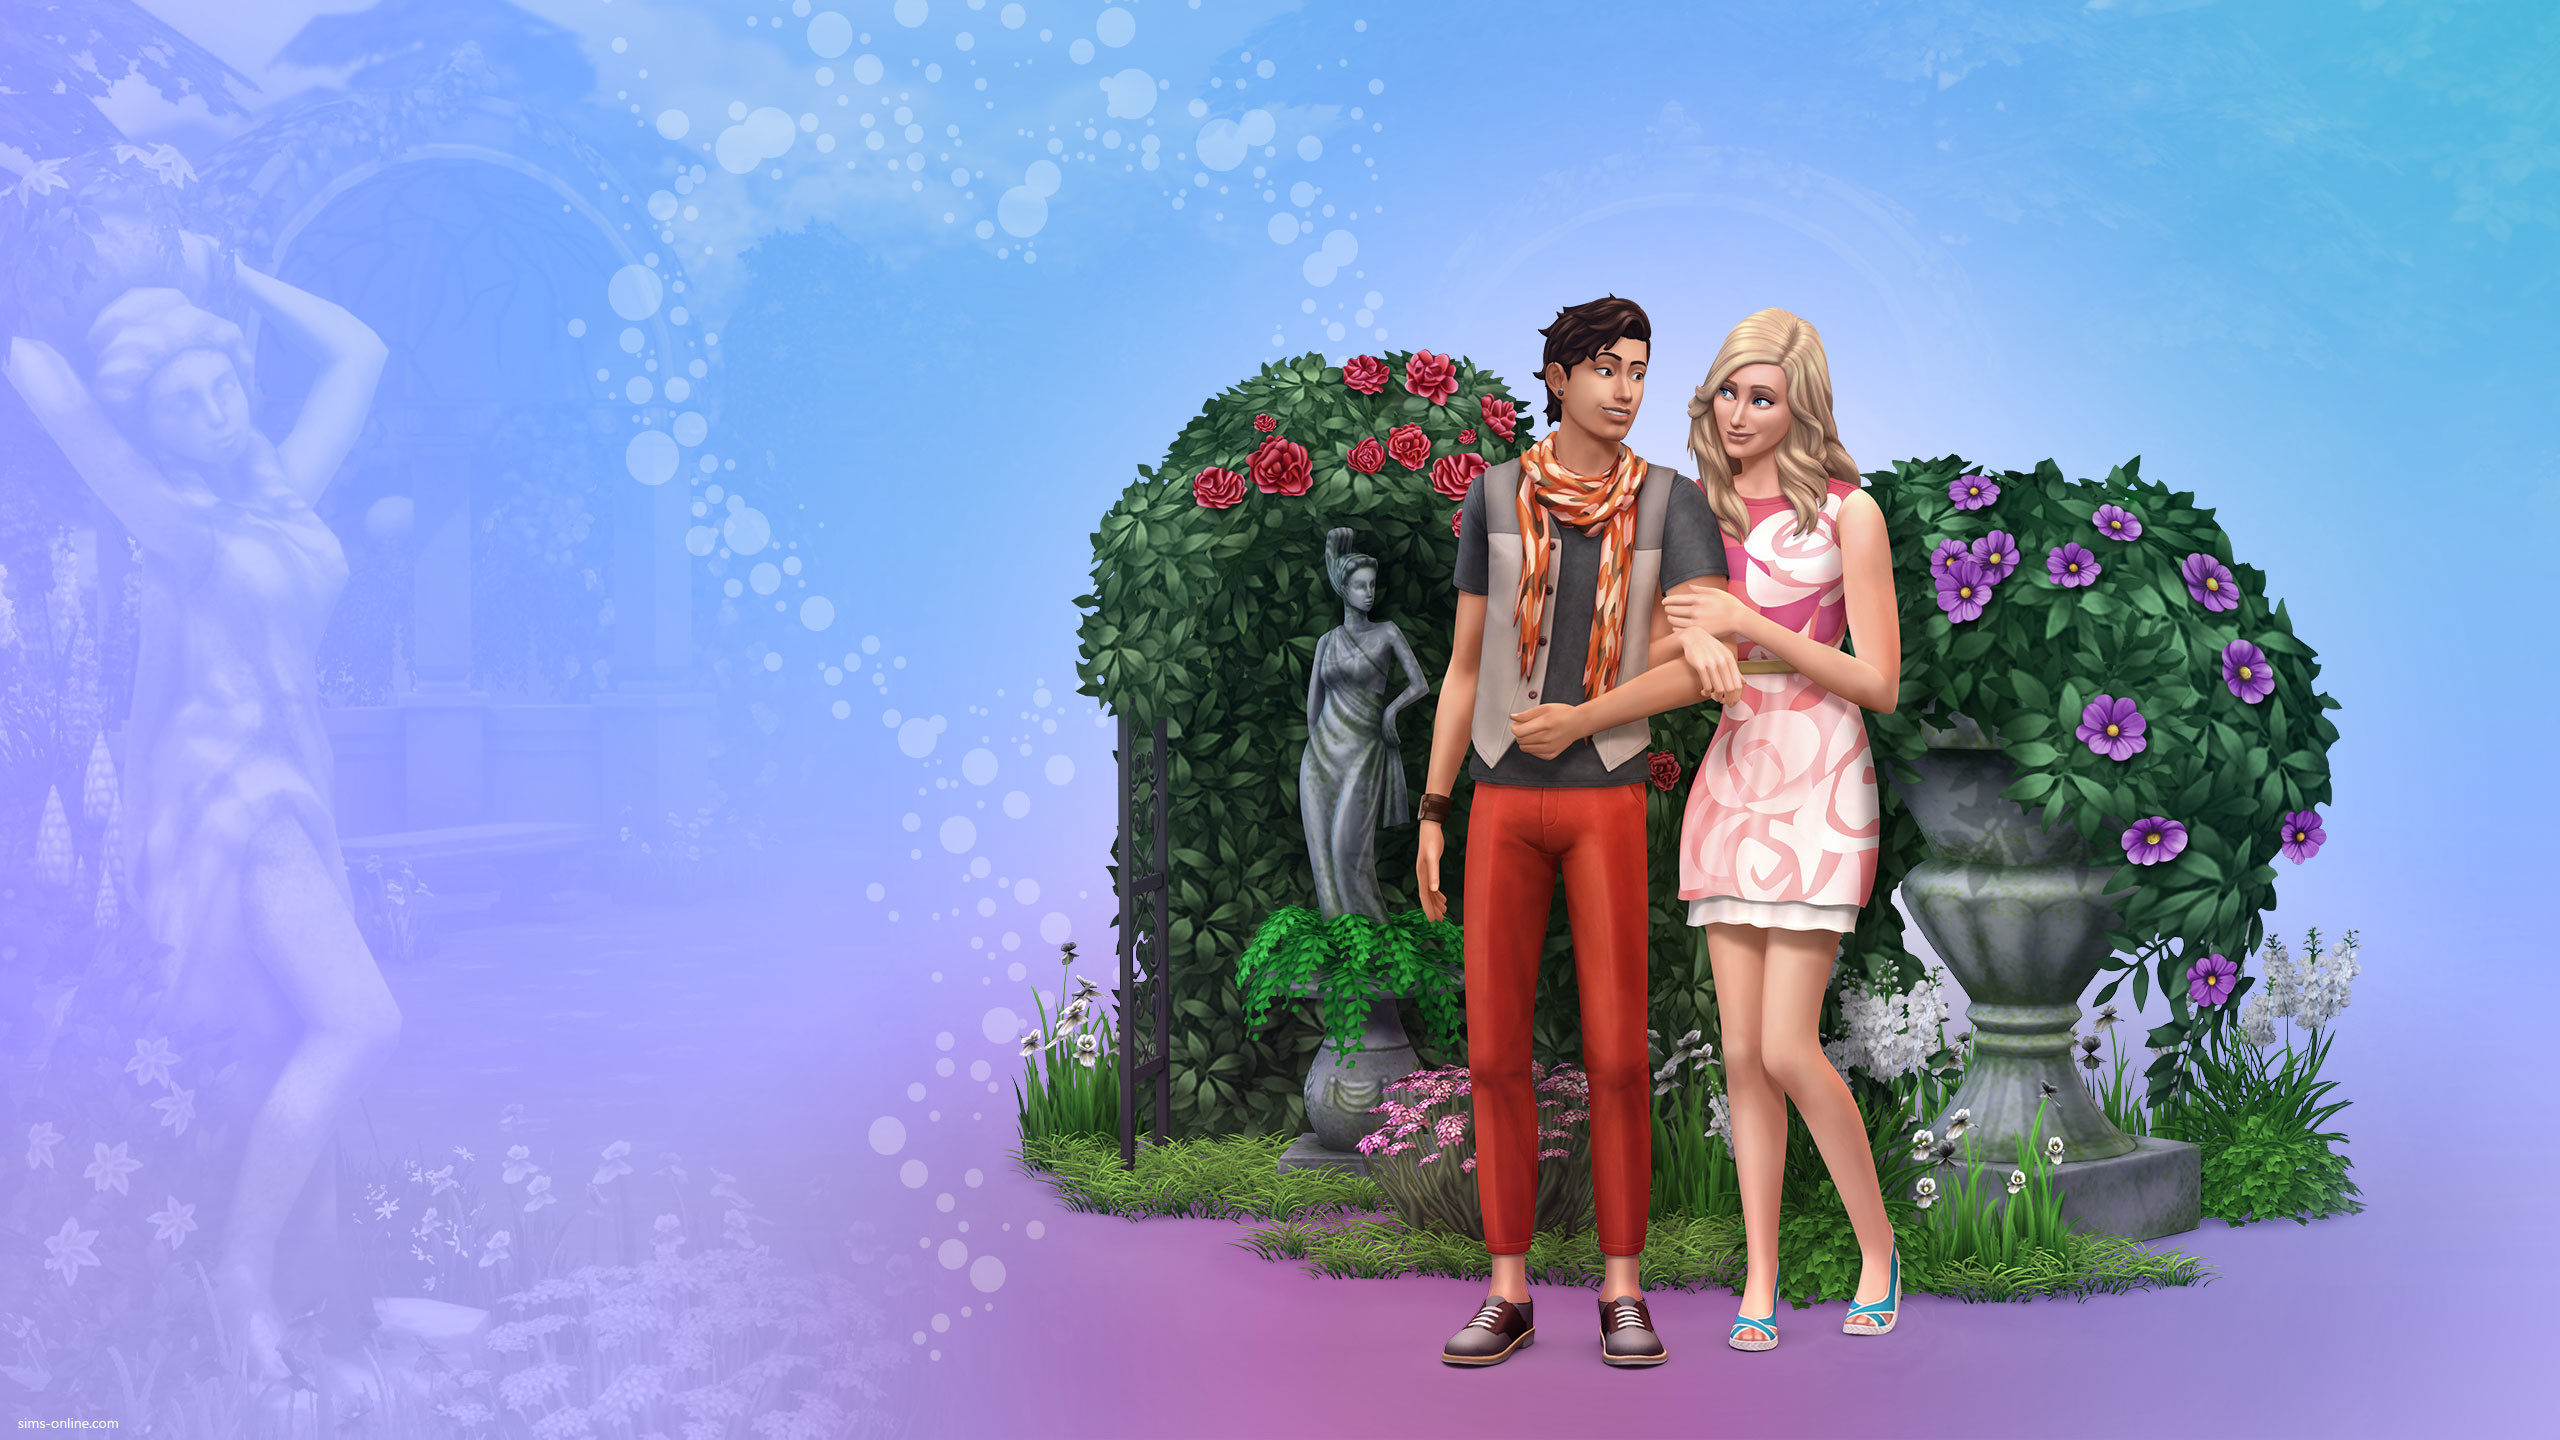 2560x1440 The Sims 4 Romantic Garden Stuff Wallpaper